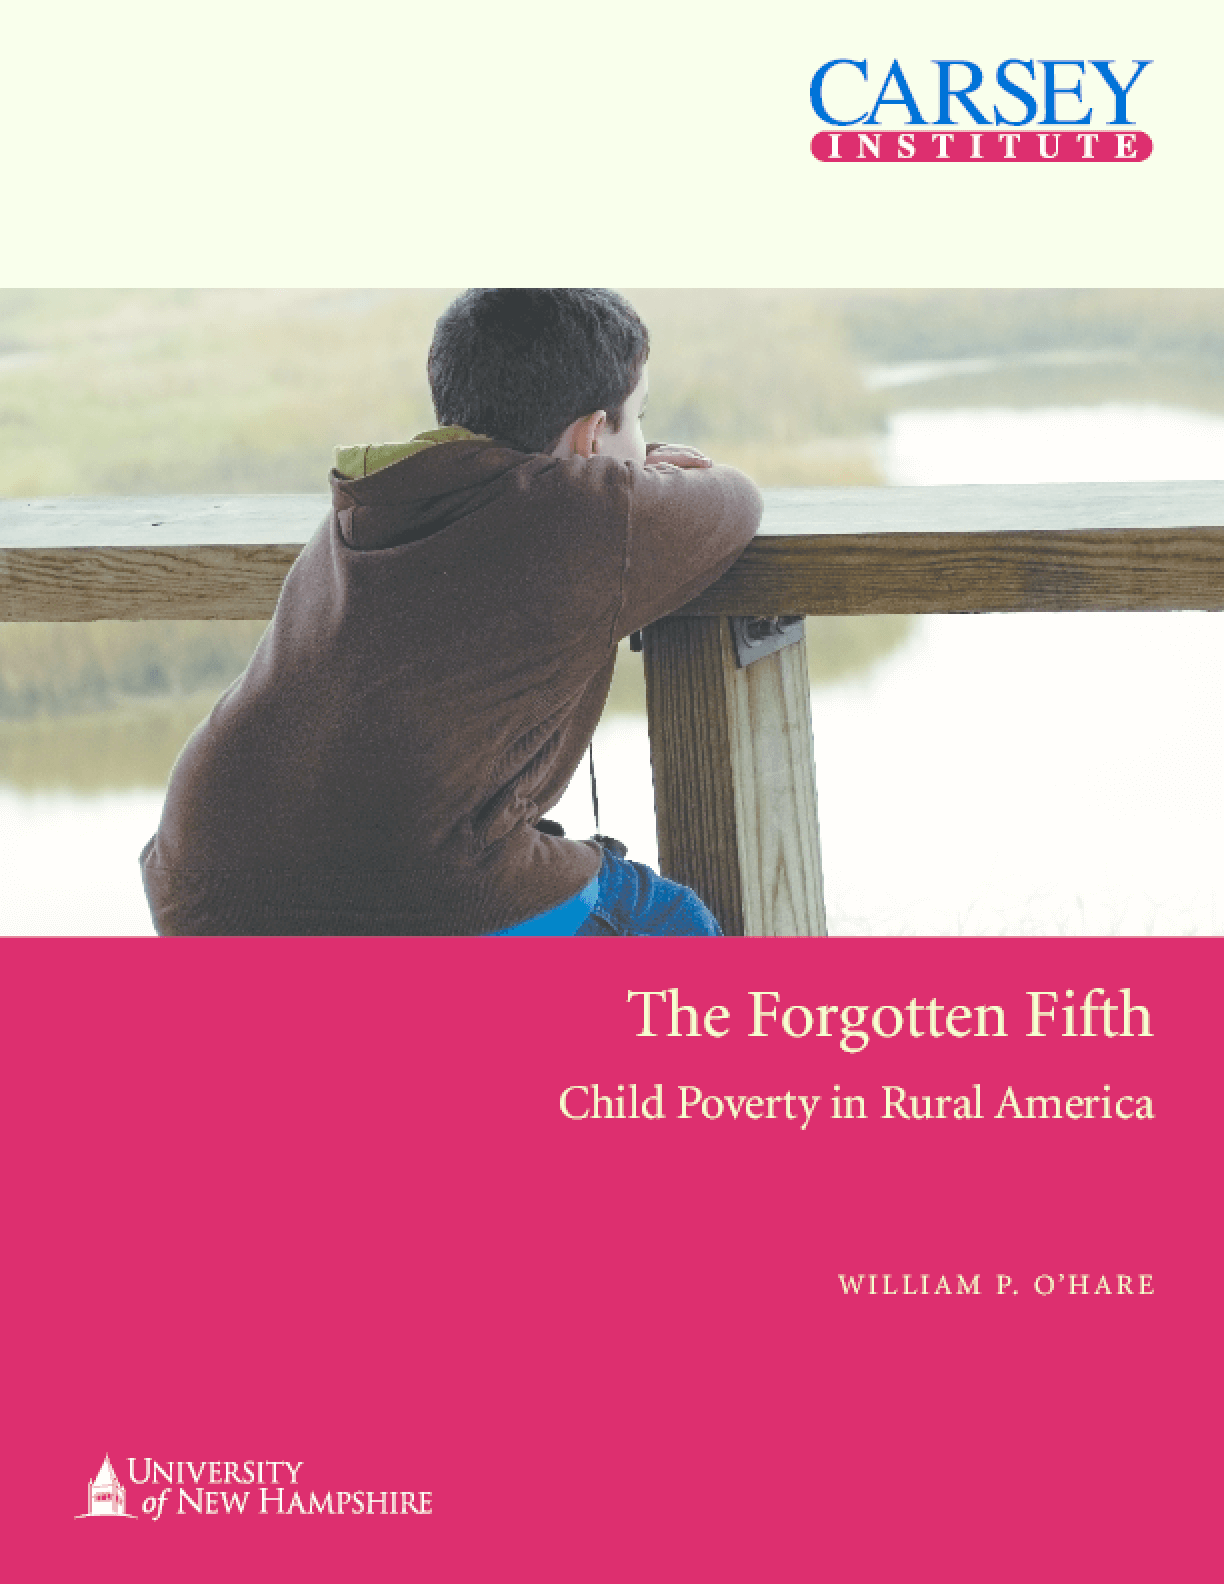 The Forgotten Fifth: Child Poverty in Rural America